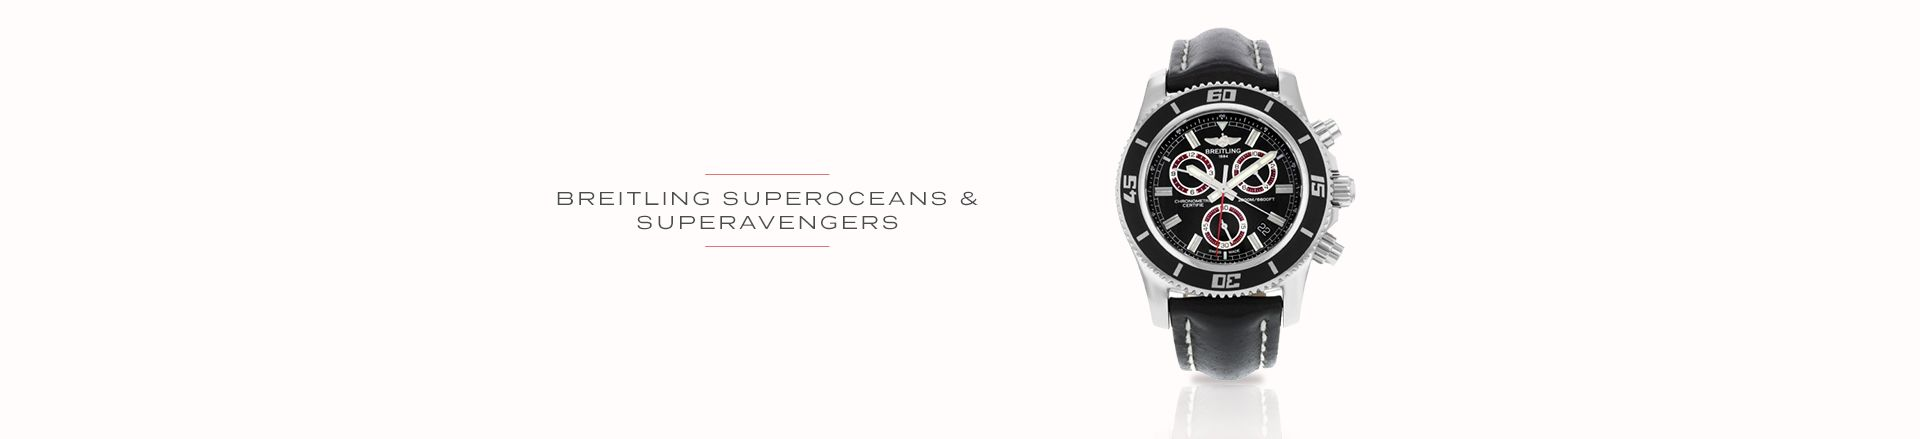 Breitling Superoceans and Superavengers